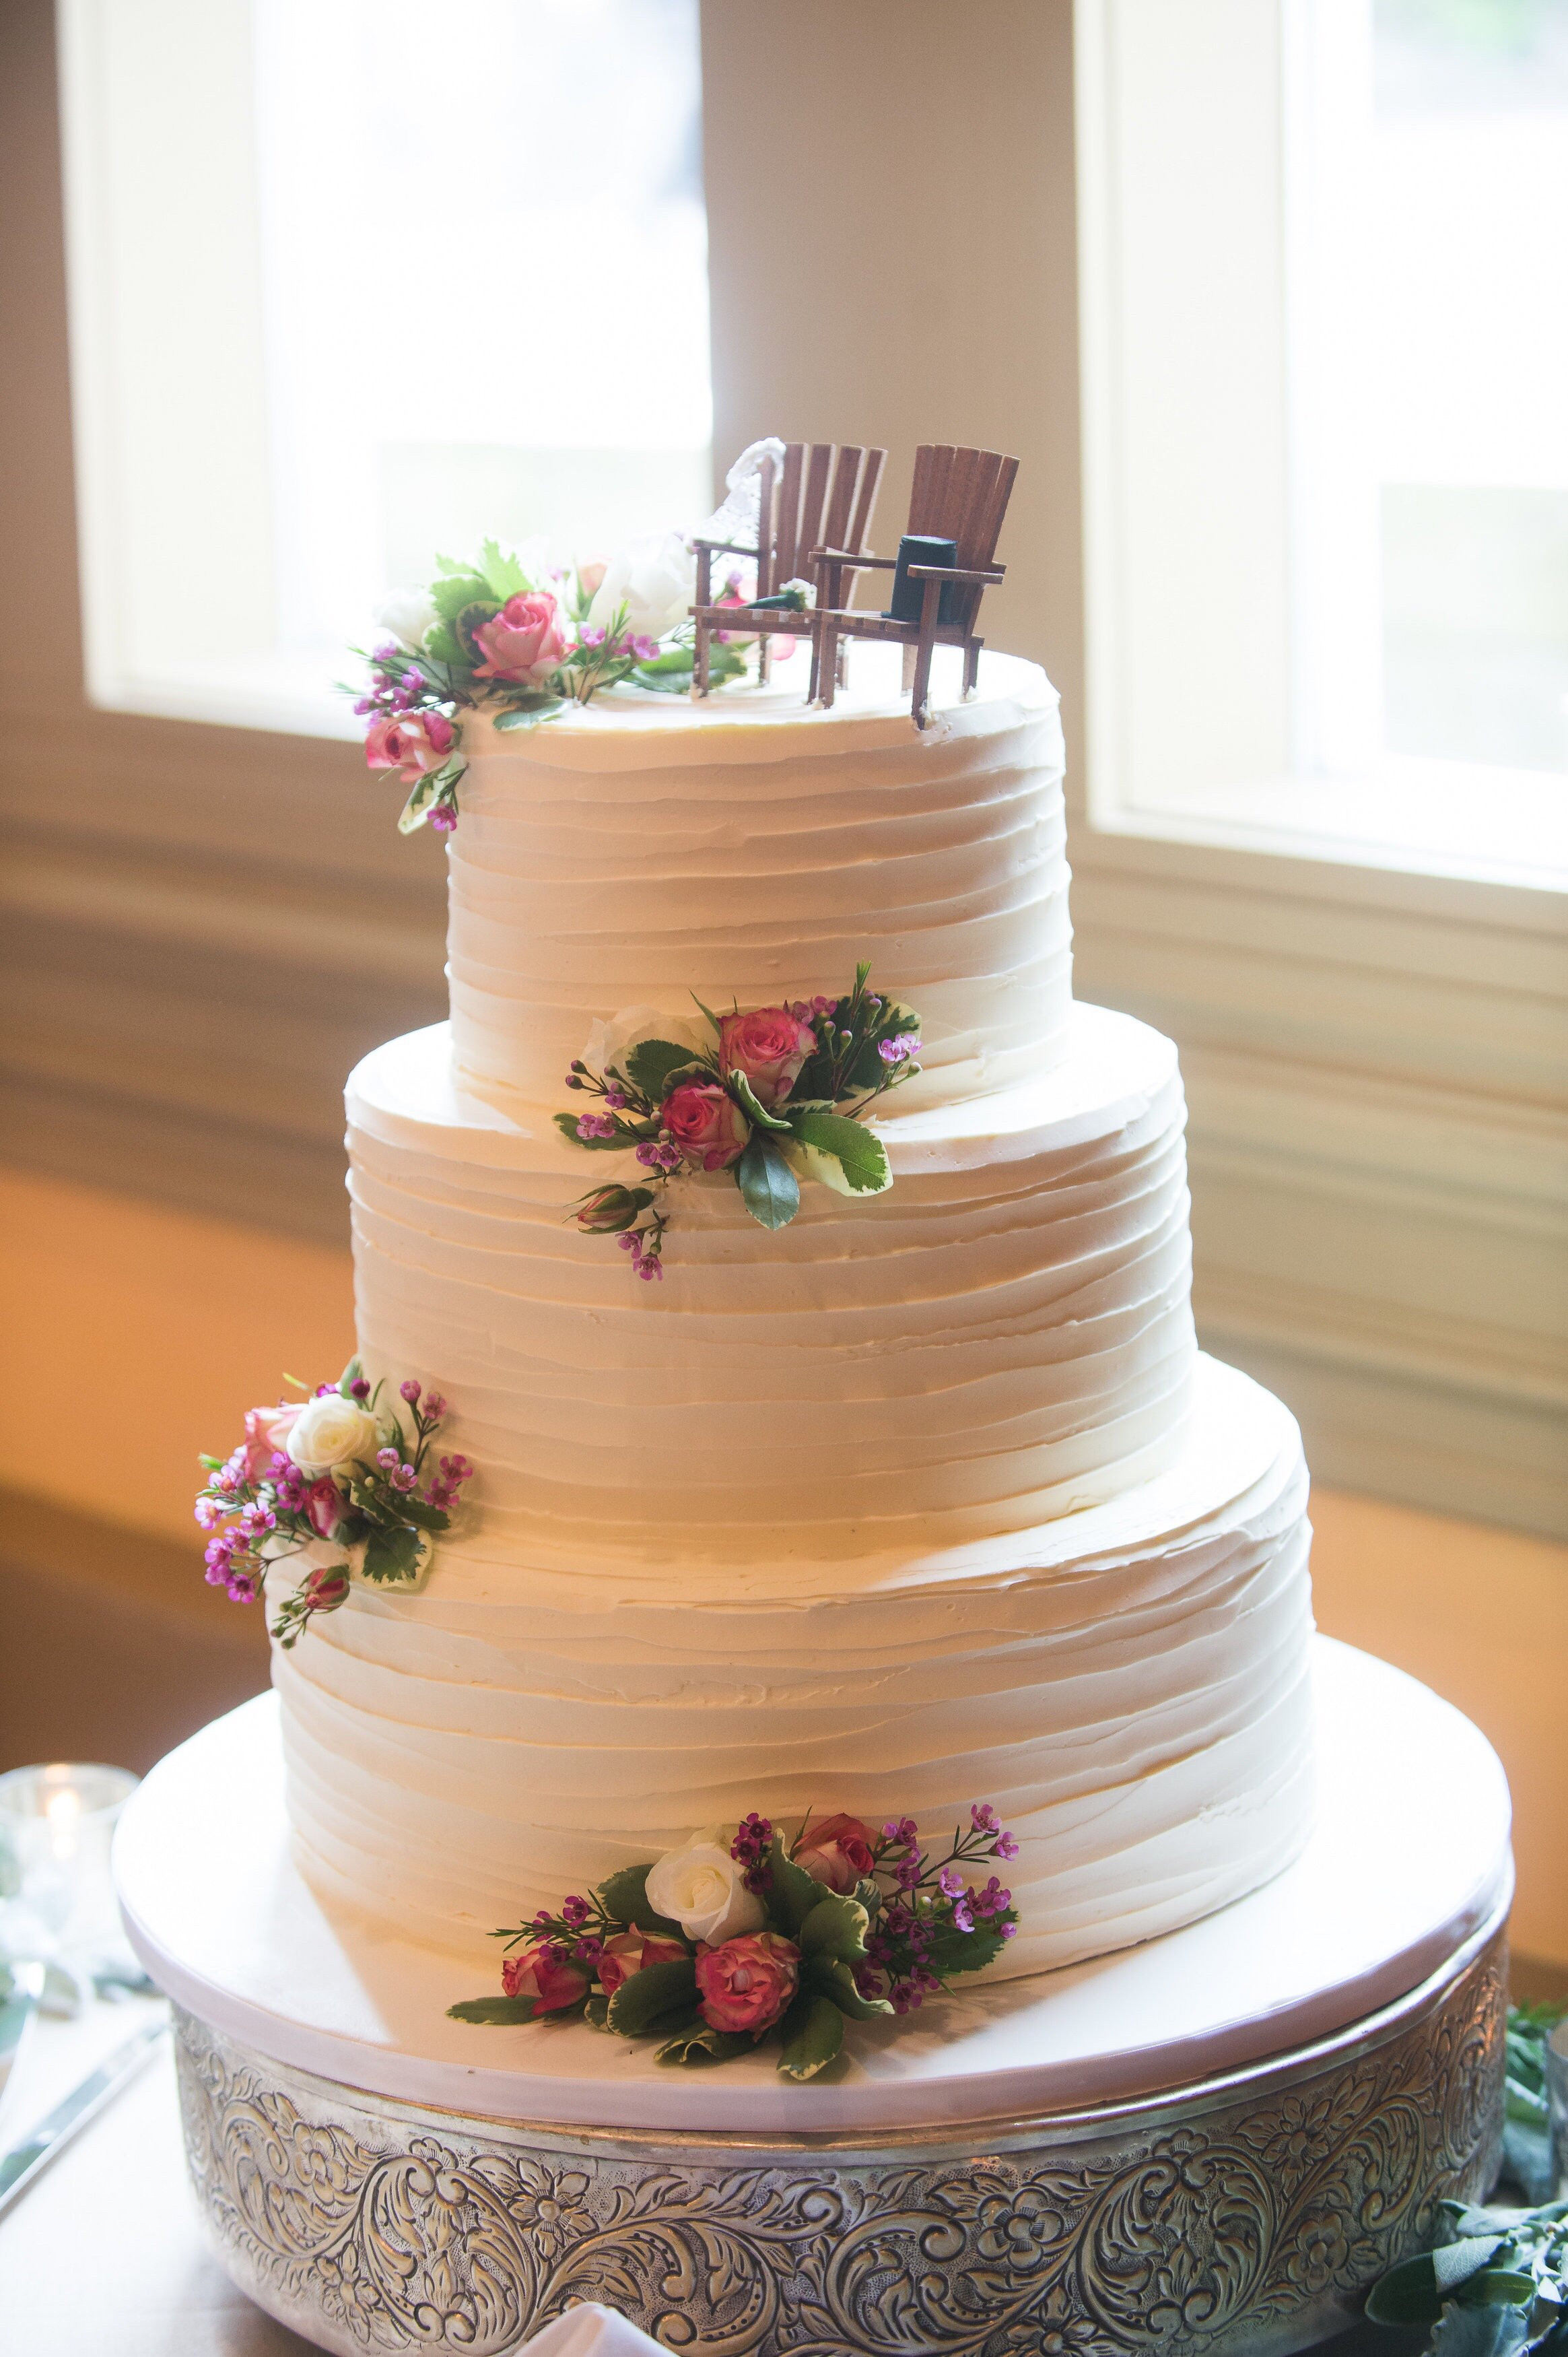 Cakes Design For Wedding  The 15 mon Cake Designs Names So You Know What to Ask For